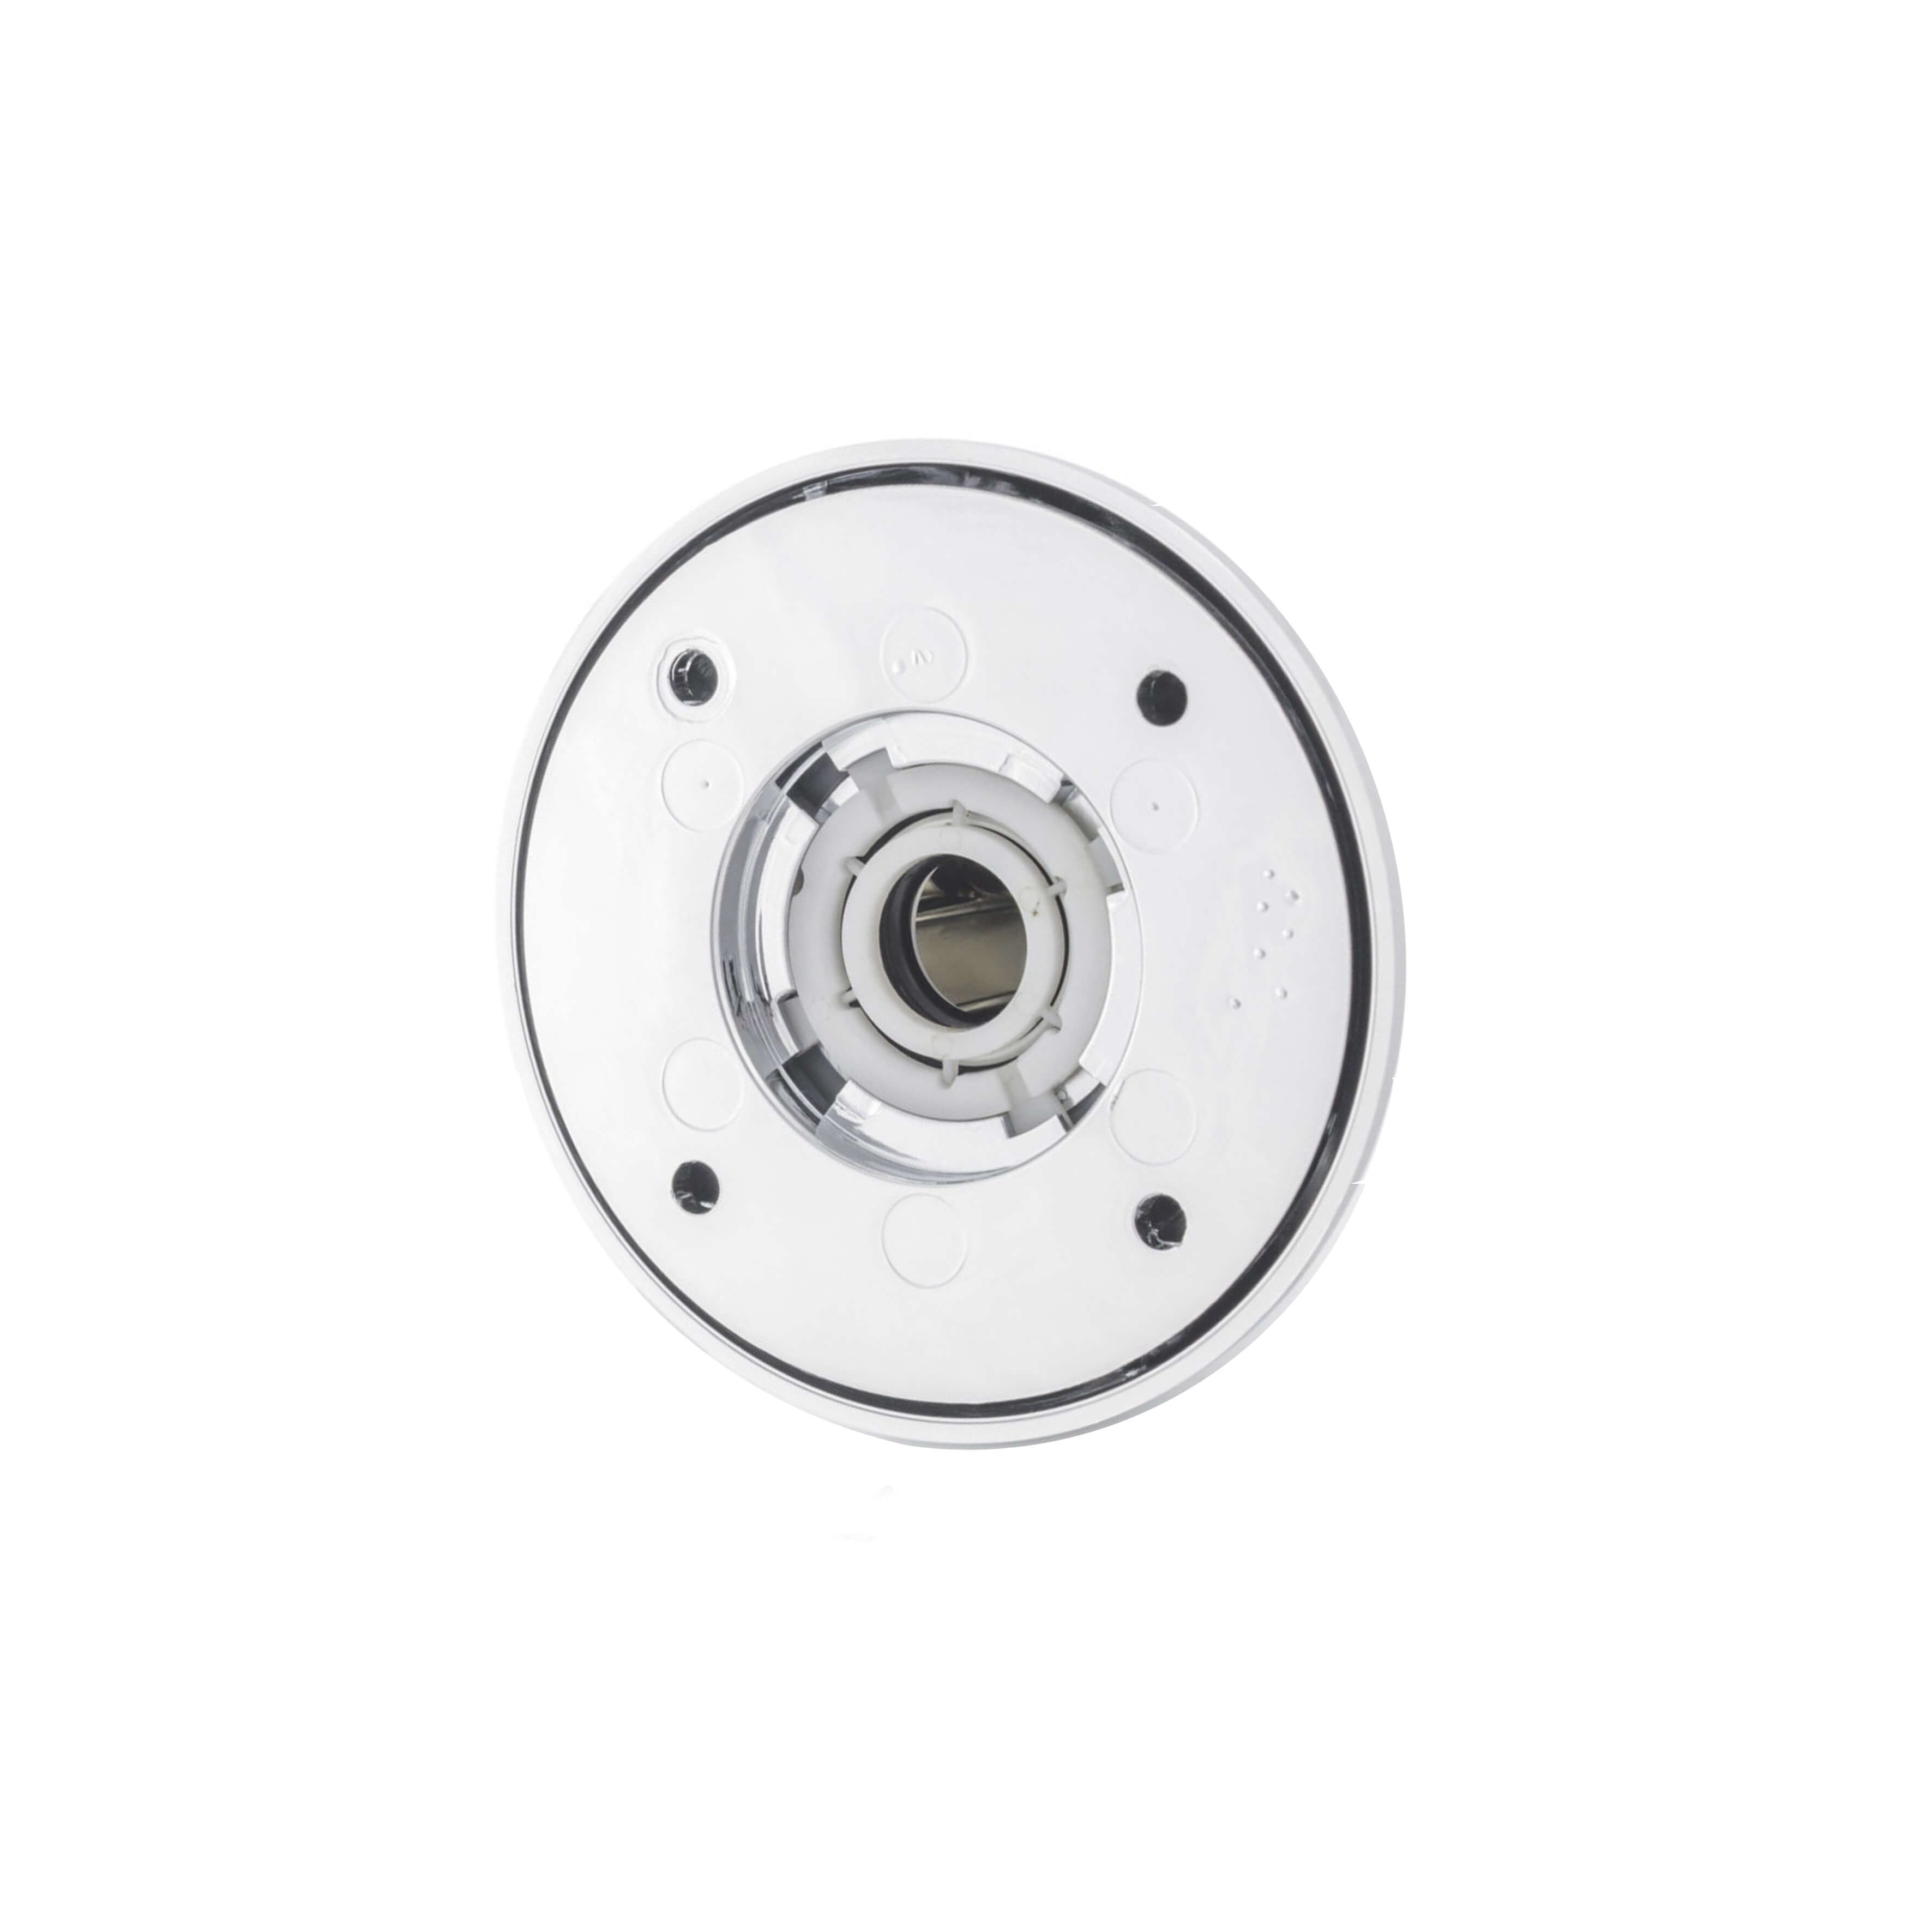 Aqualisa Wall Outlet rear 215016